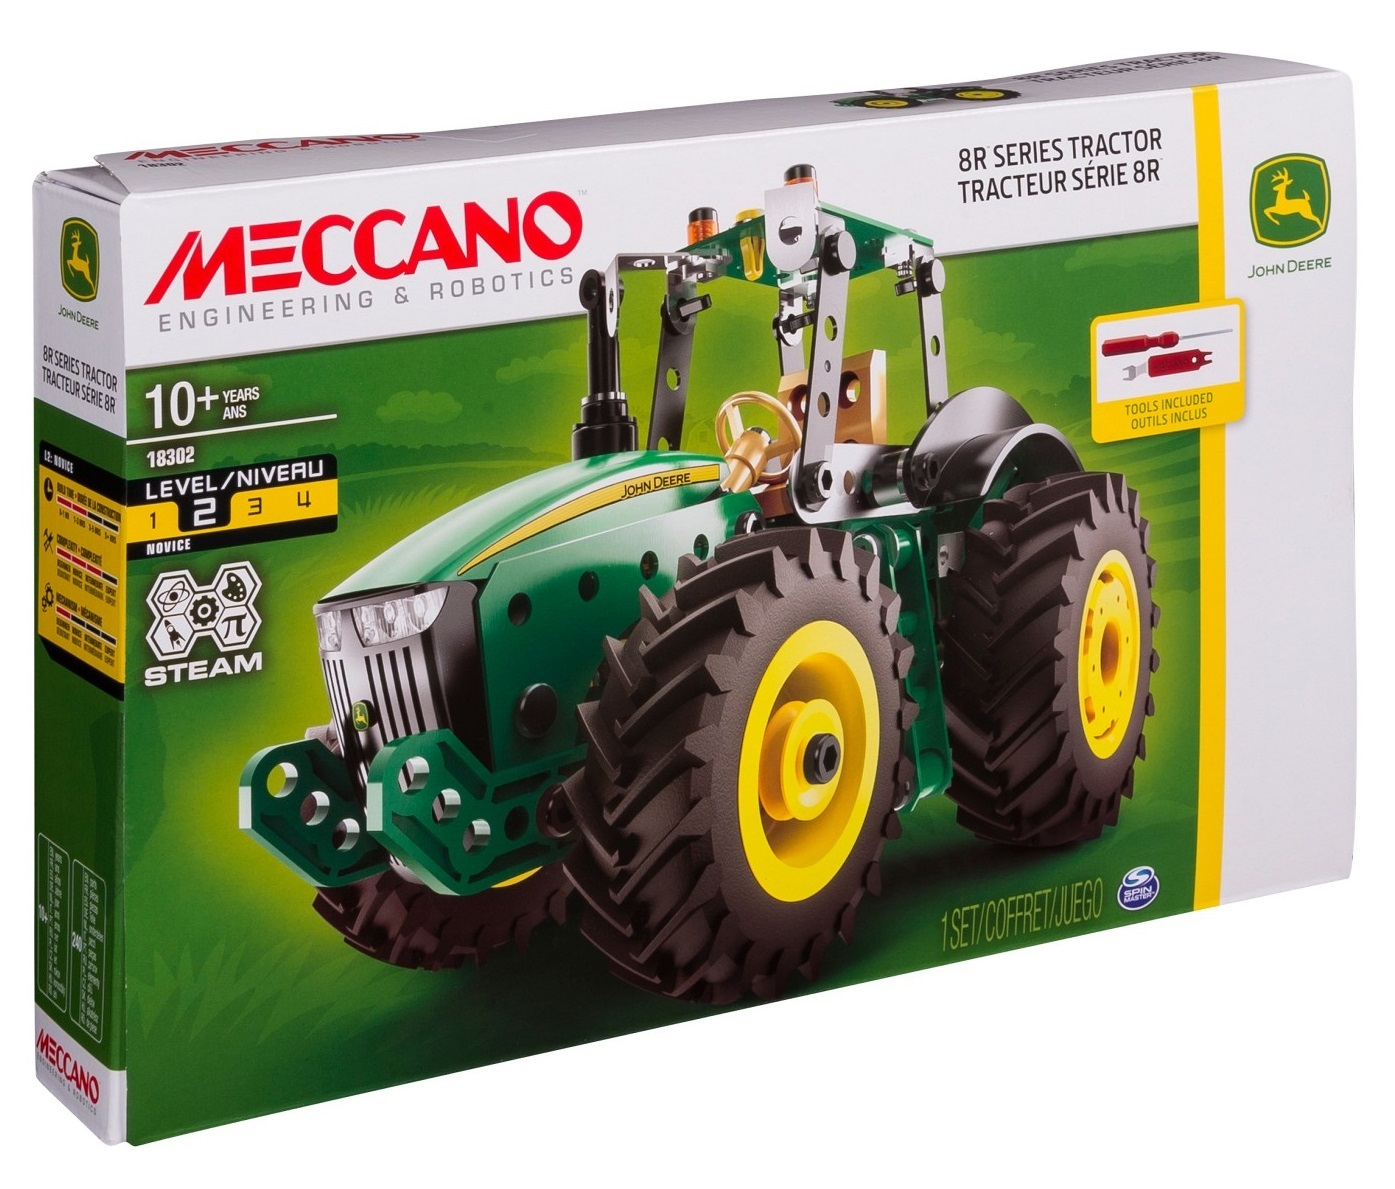 meccano - john deere 8r tractor | toy | at mighty ape australia